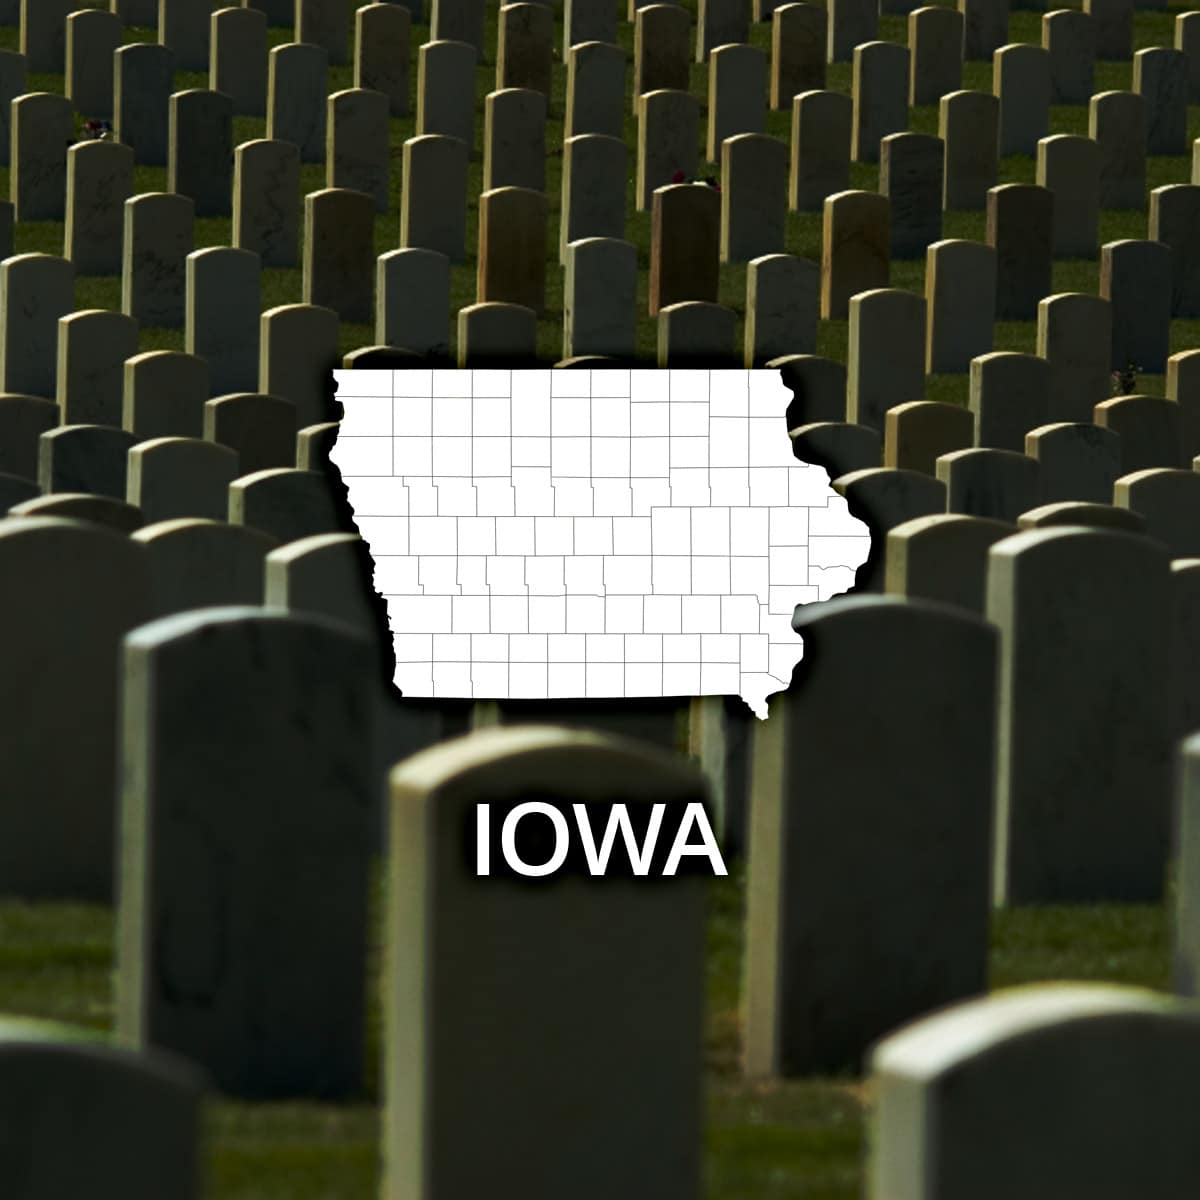 Where to Obtain an Iowa Death Certificate